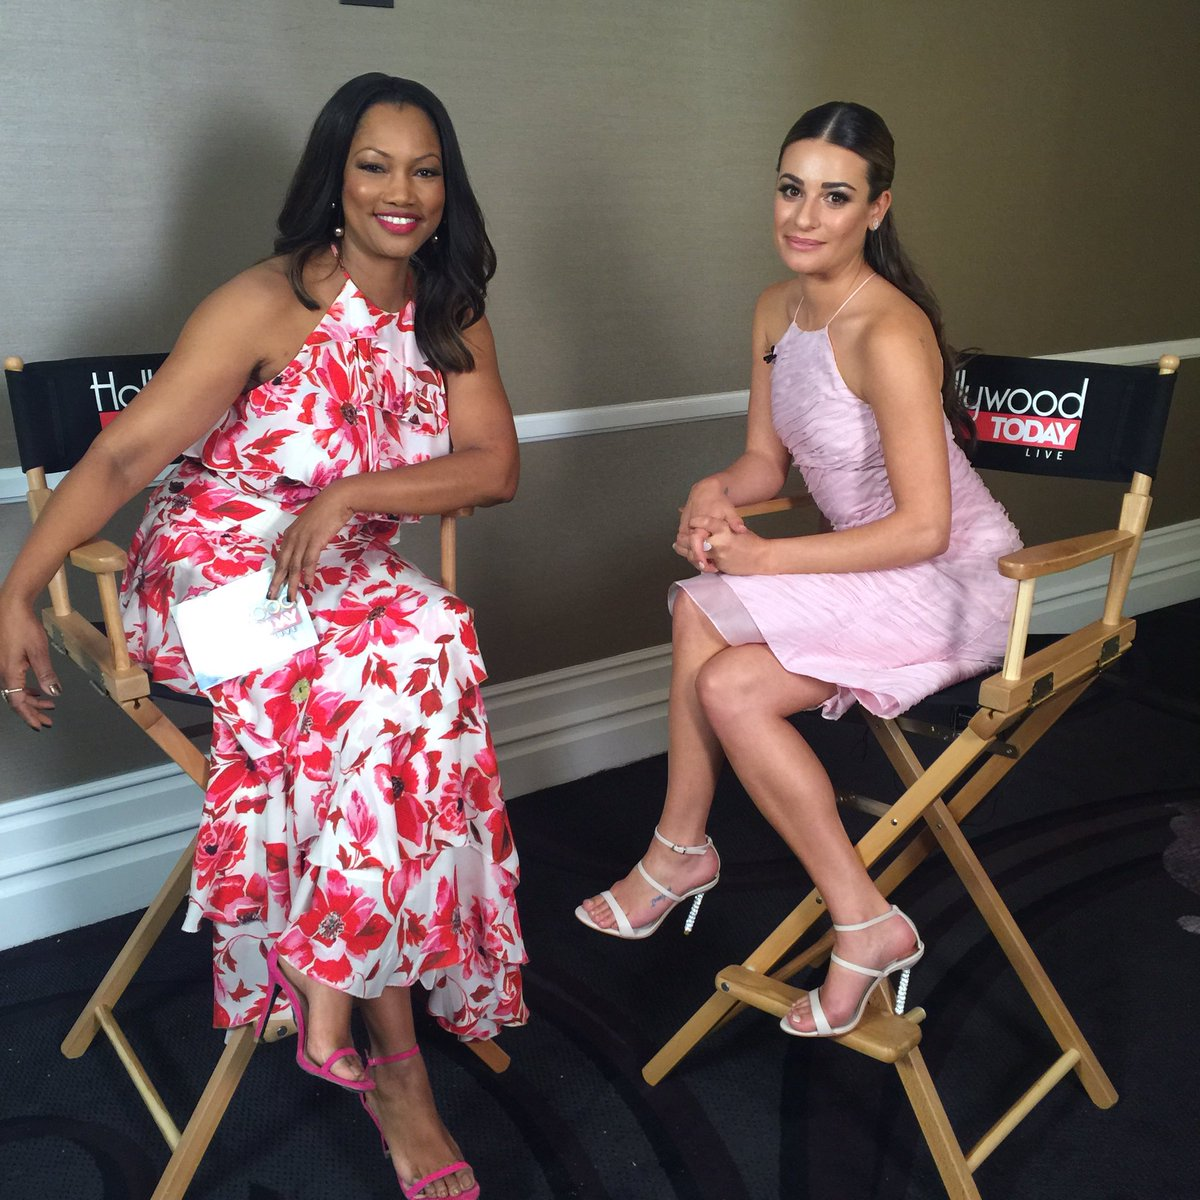 Backstage with @GarcelleB and @msleamichele with @OfficialHTL at @suwn #InspirationAwards https://t.co/RCQbSworQ9